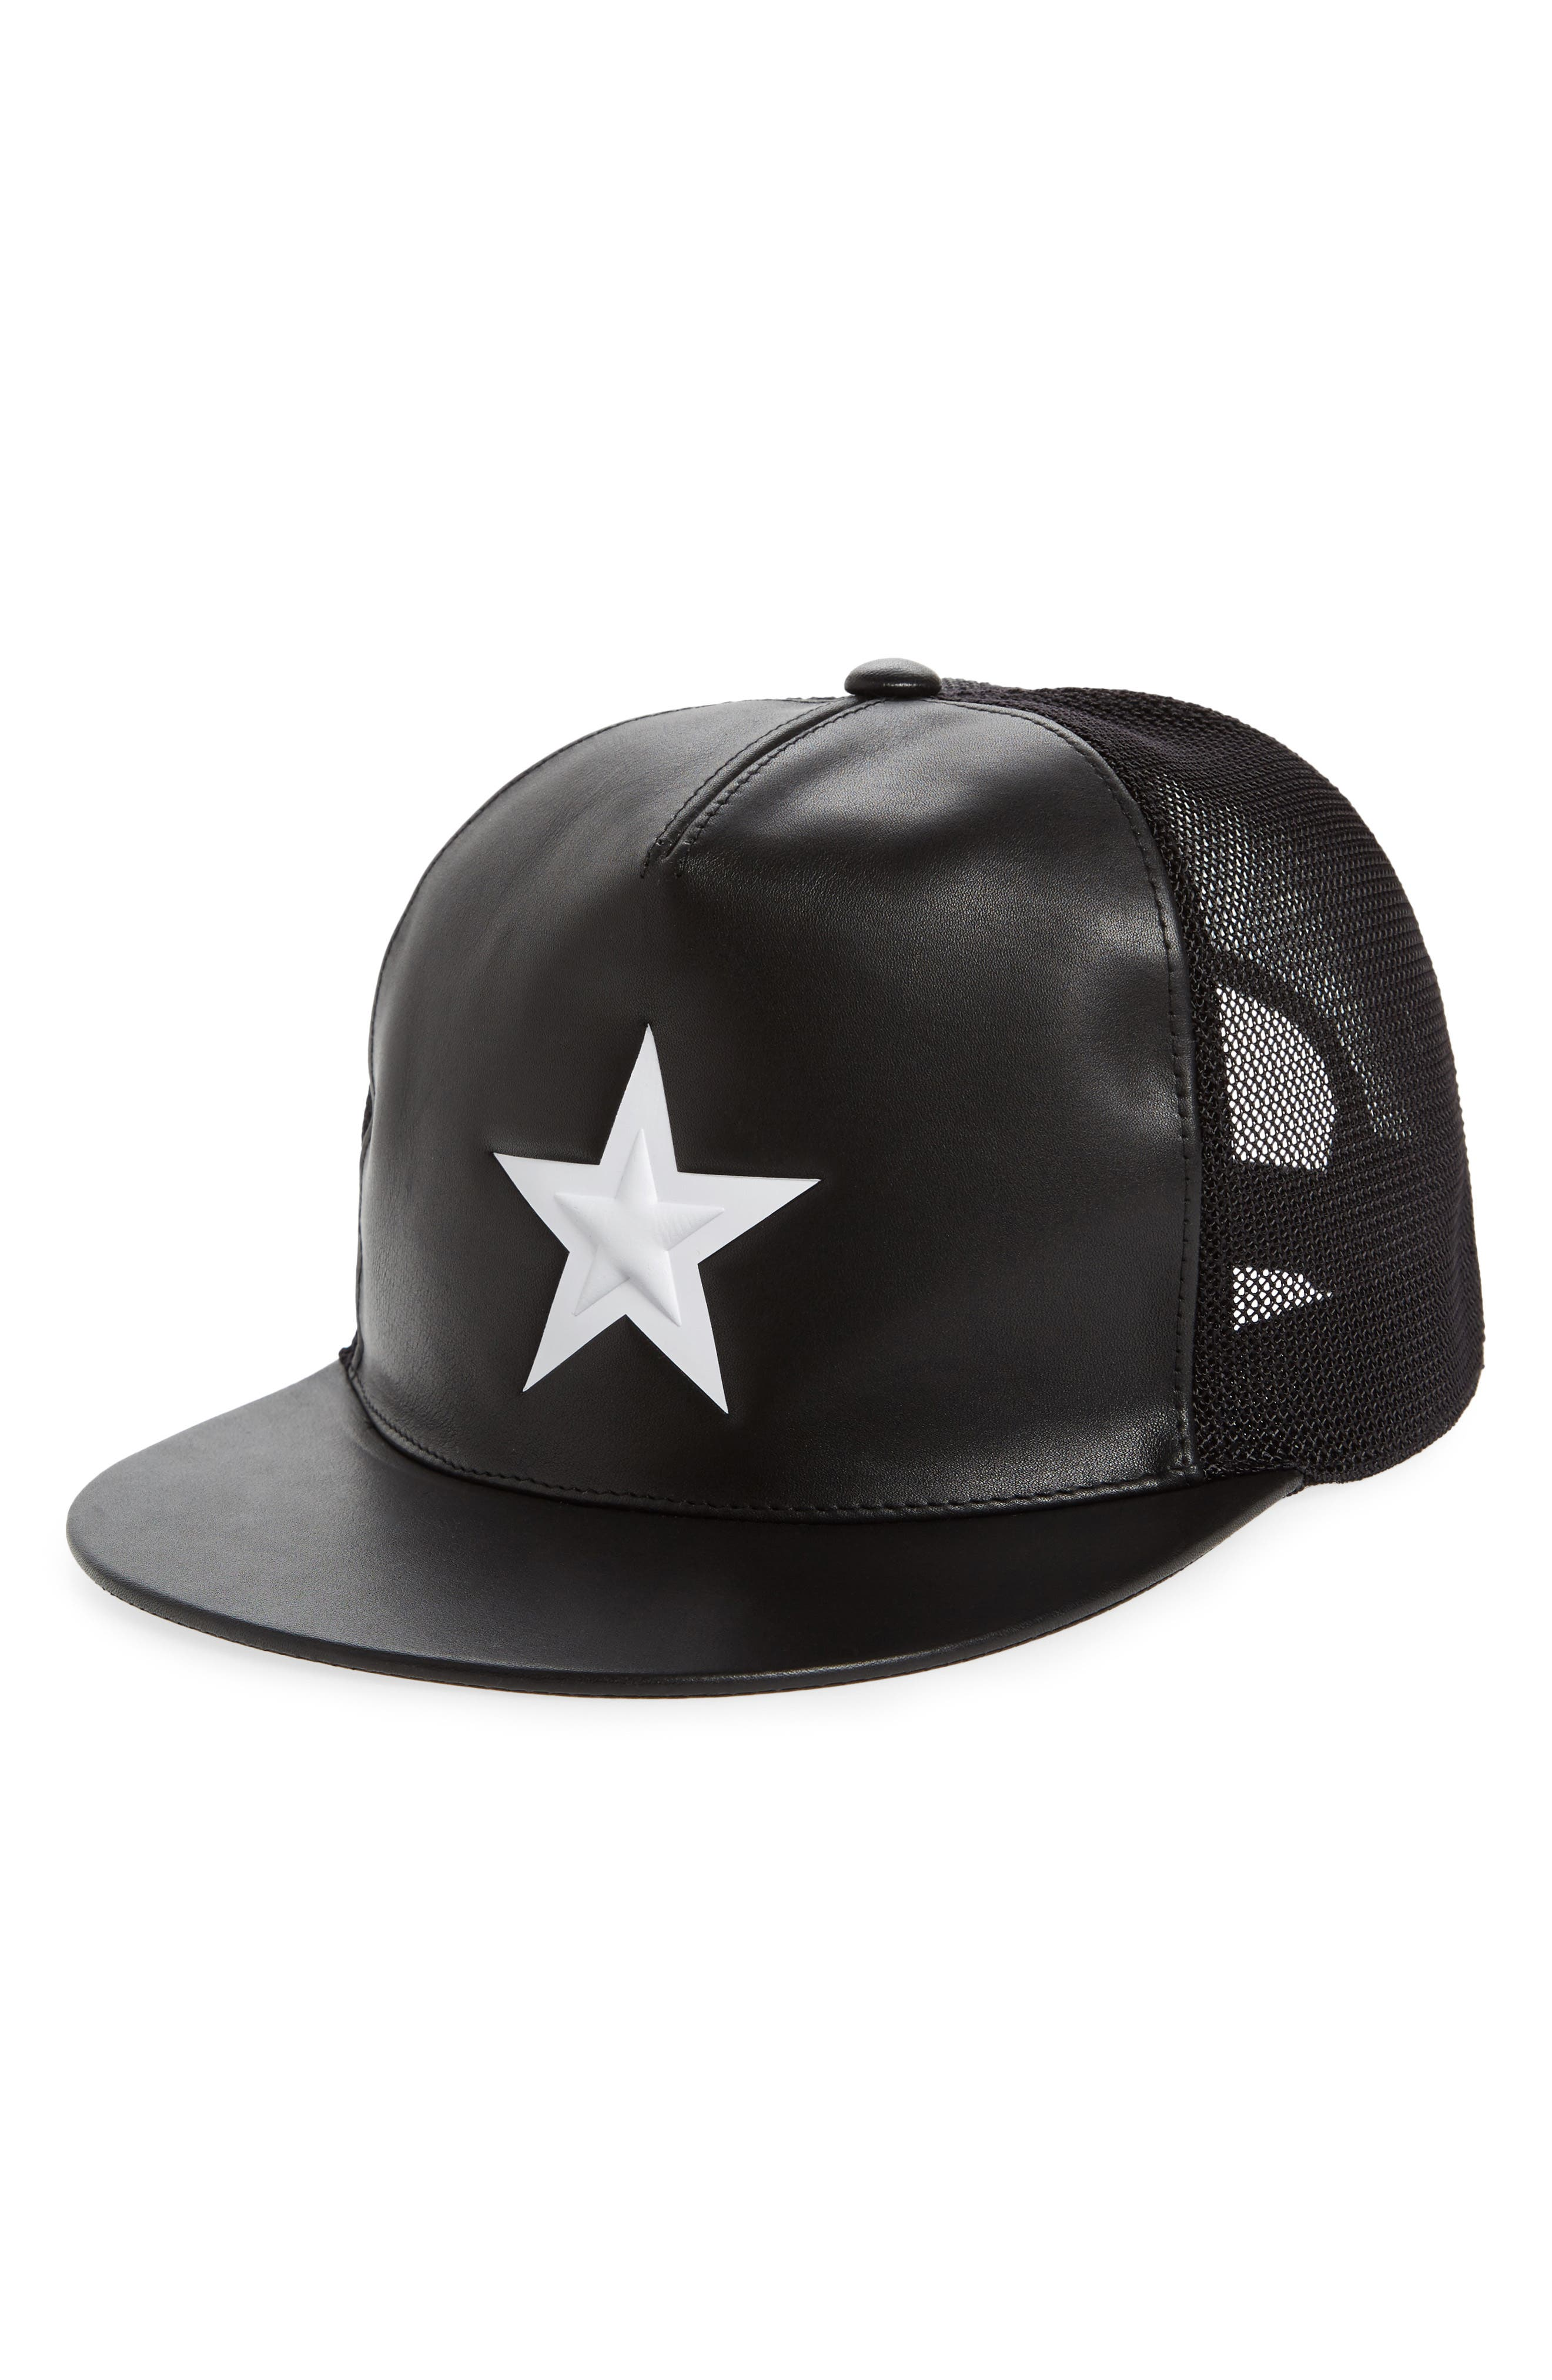 Star Leather Trucker Cap,                         Main,                         color, Black/White